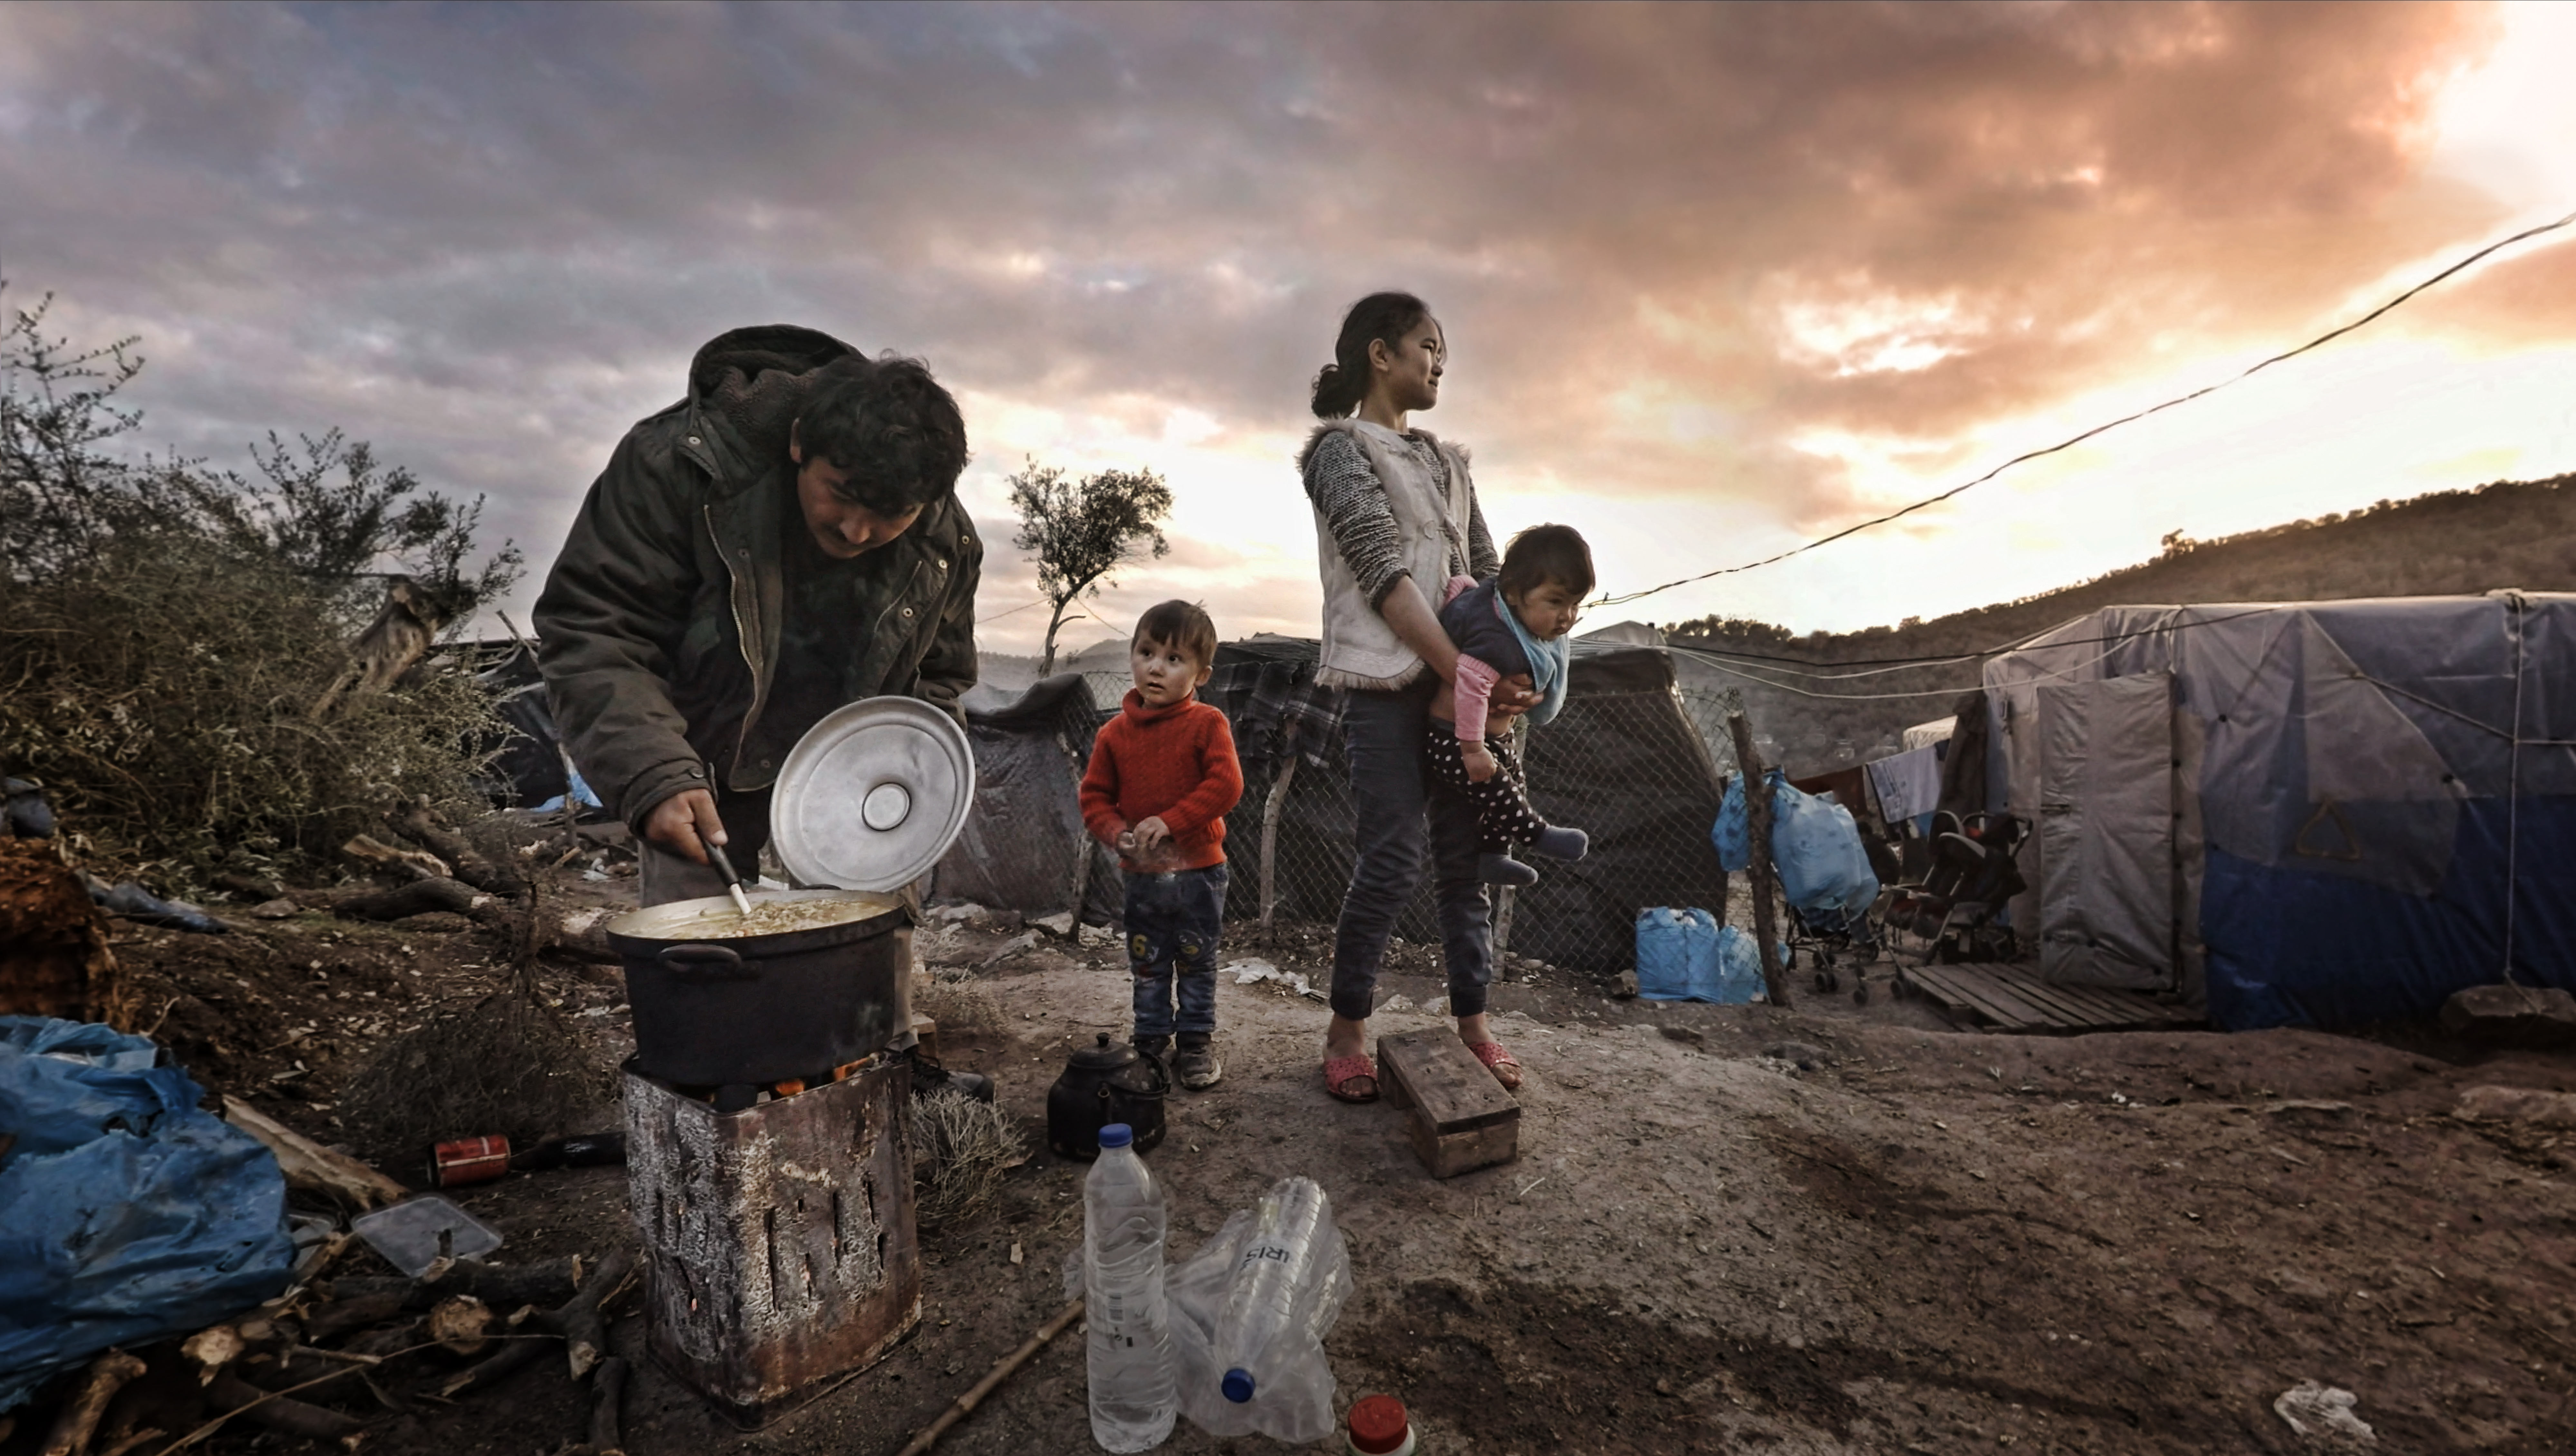 A family cooking on a makeshift cooker in a refugee camp.